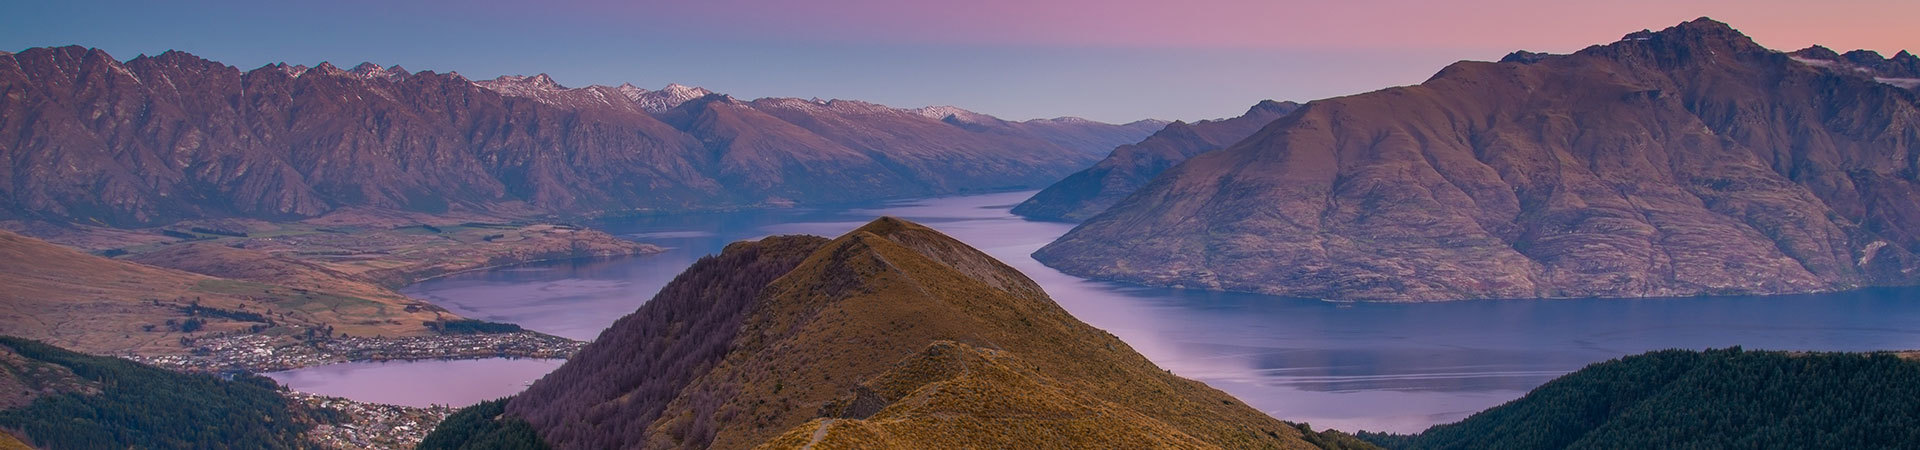 Queenstown sunset, New Zealand